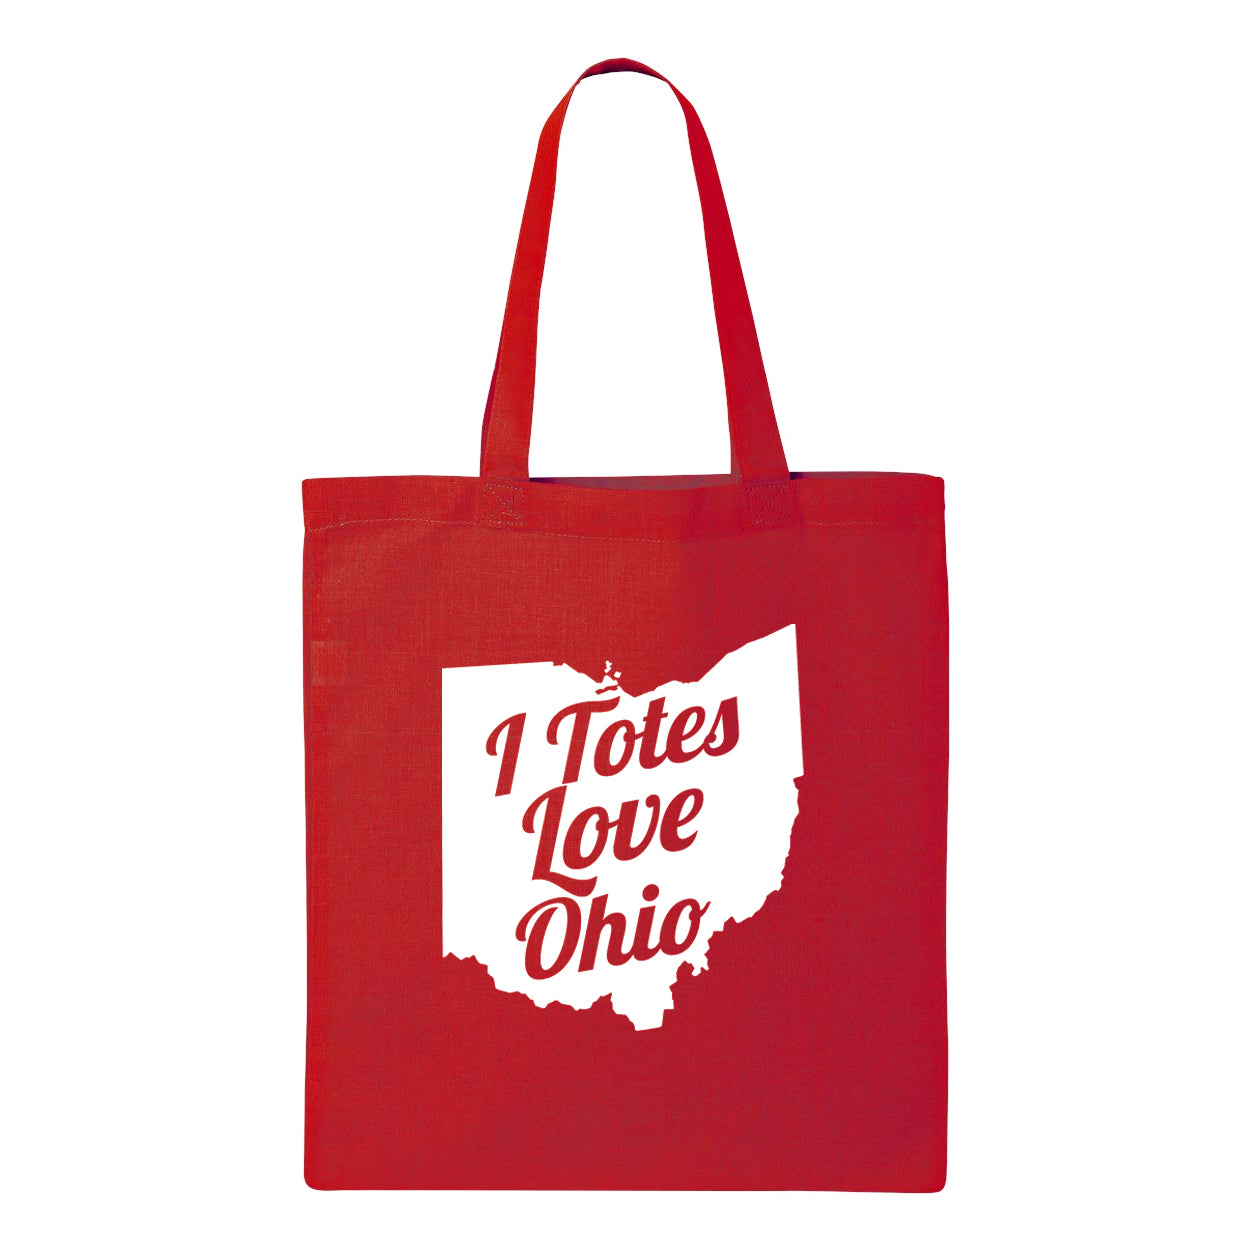 Totes Love Ohio Tote